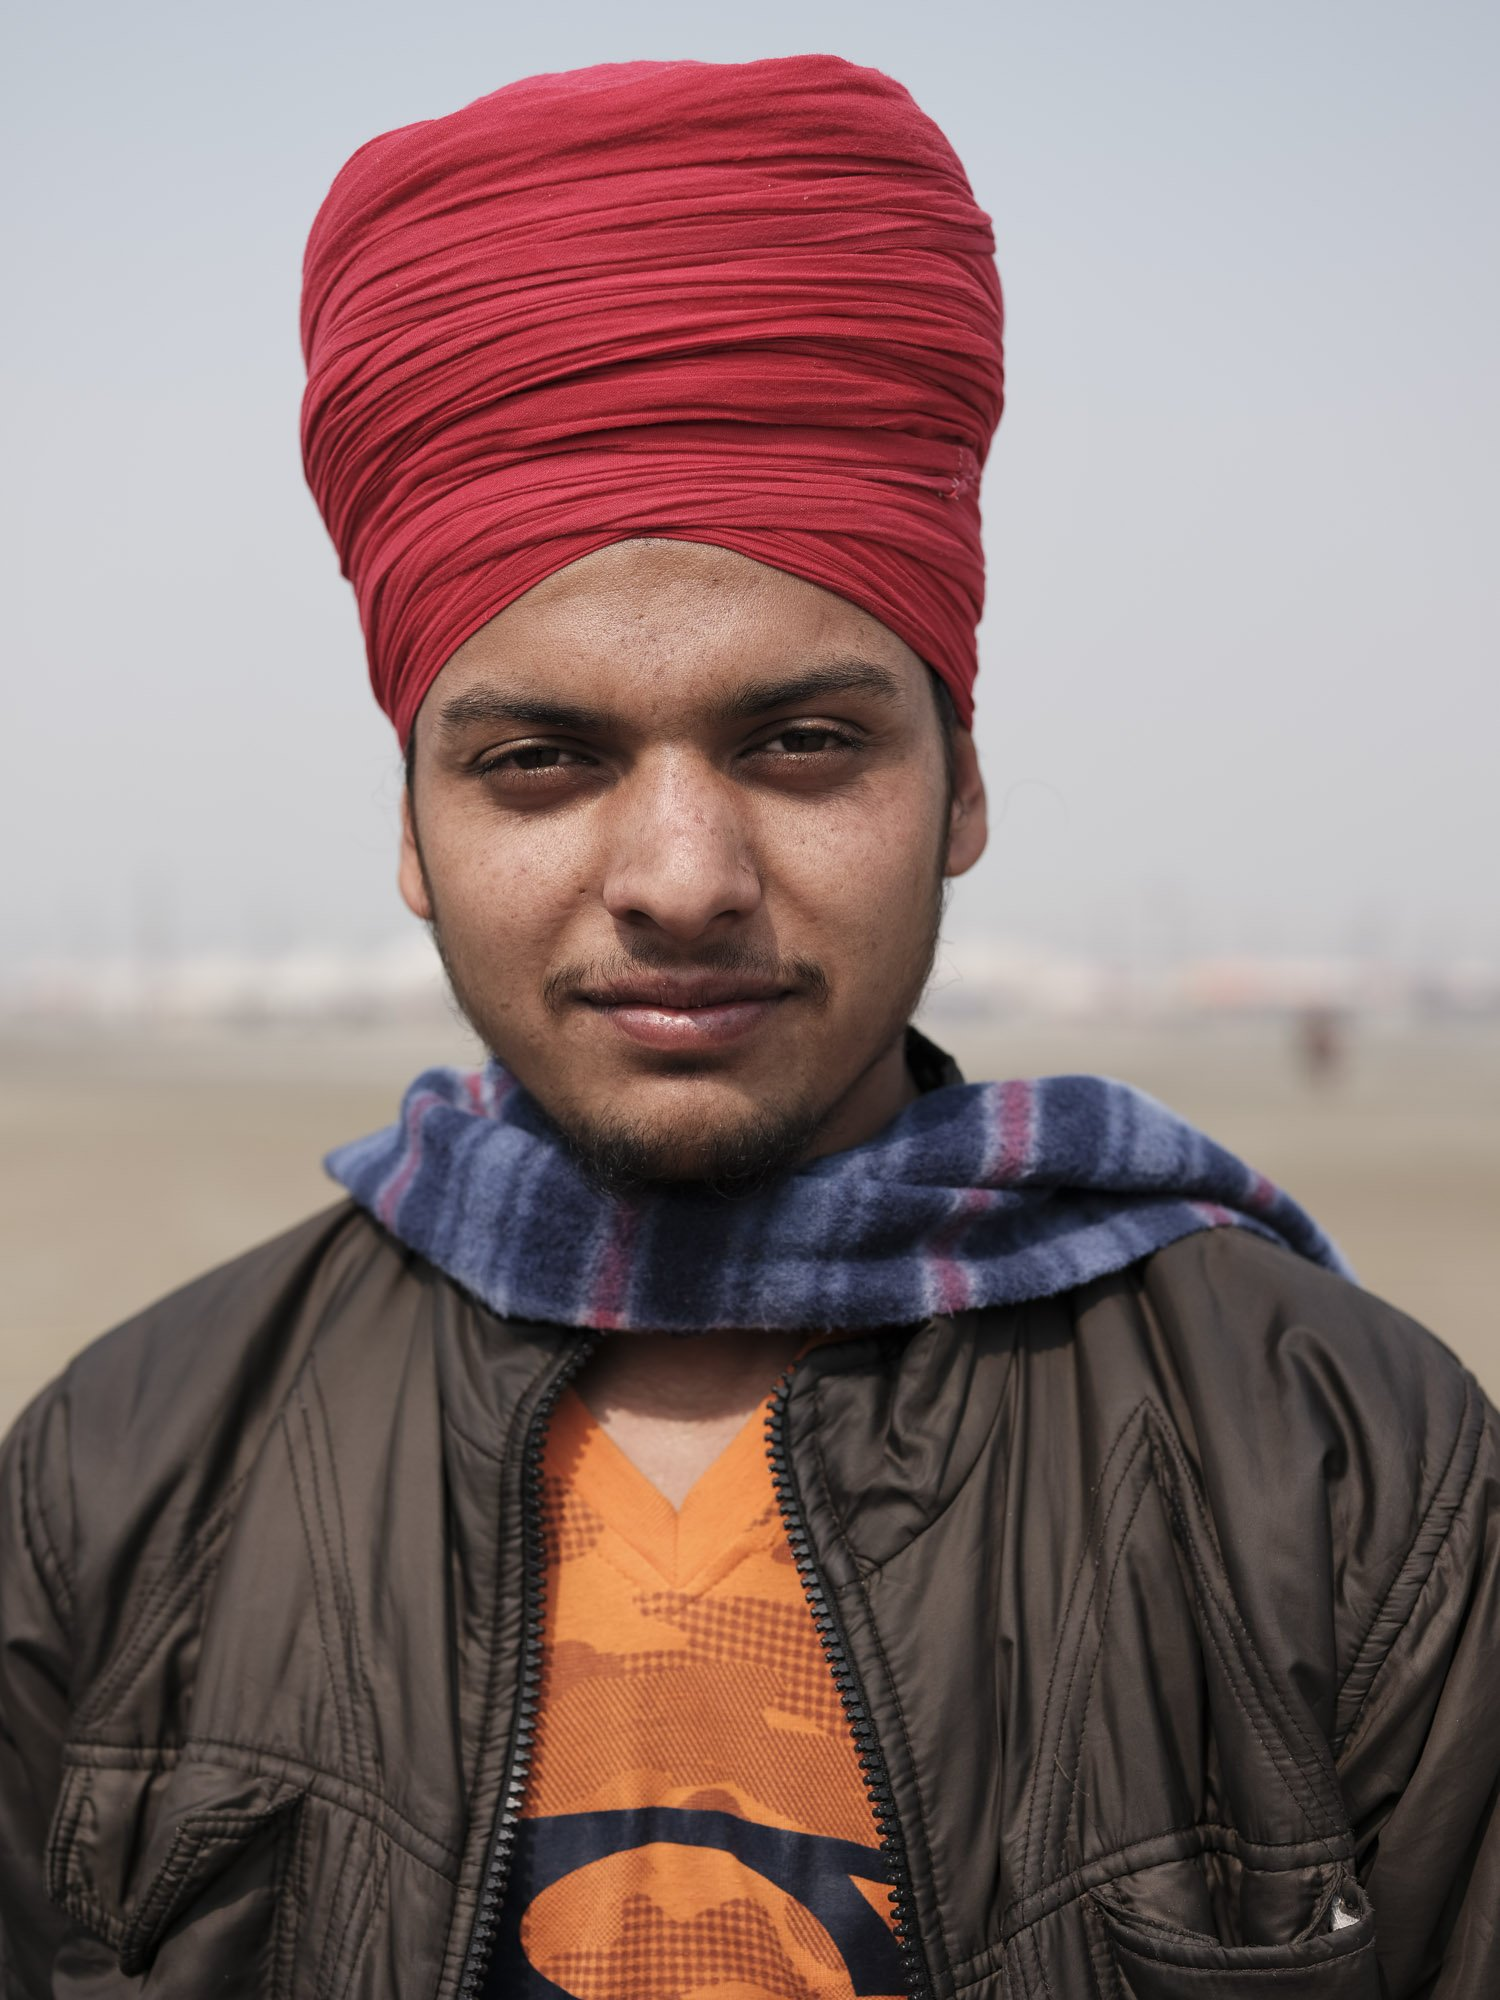 portrait man pilgrims Kumbh mela 2019 India Allahabad Prayagraj Ardh hindu religious Festival event rivers photographer jose jeuland photography